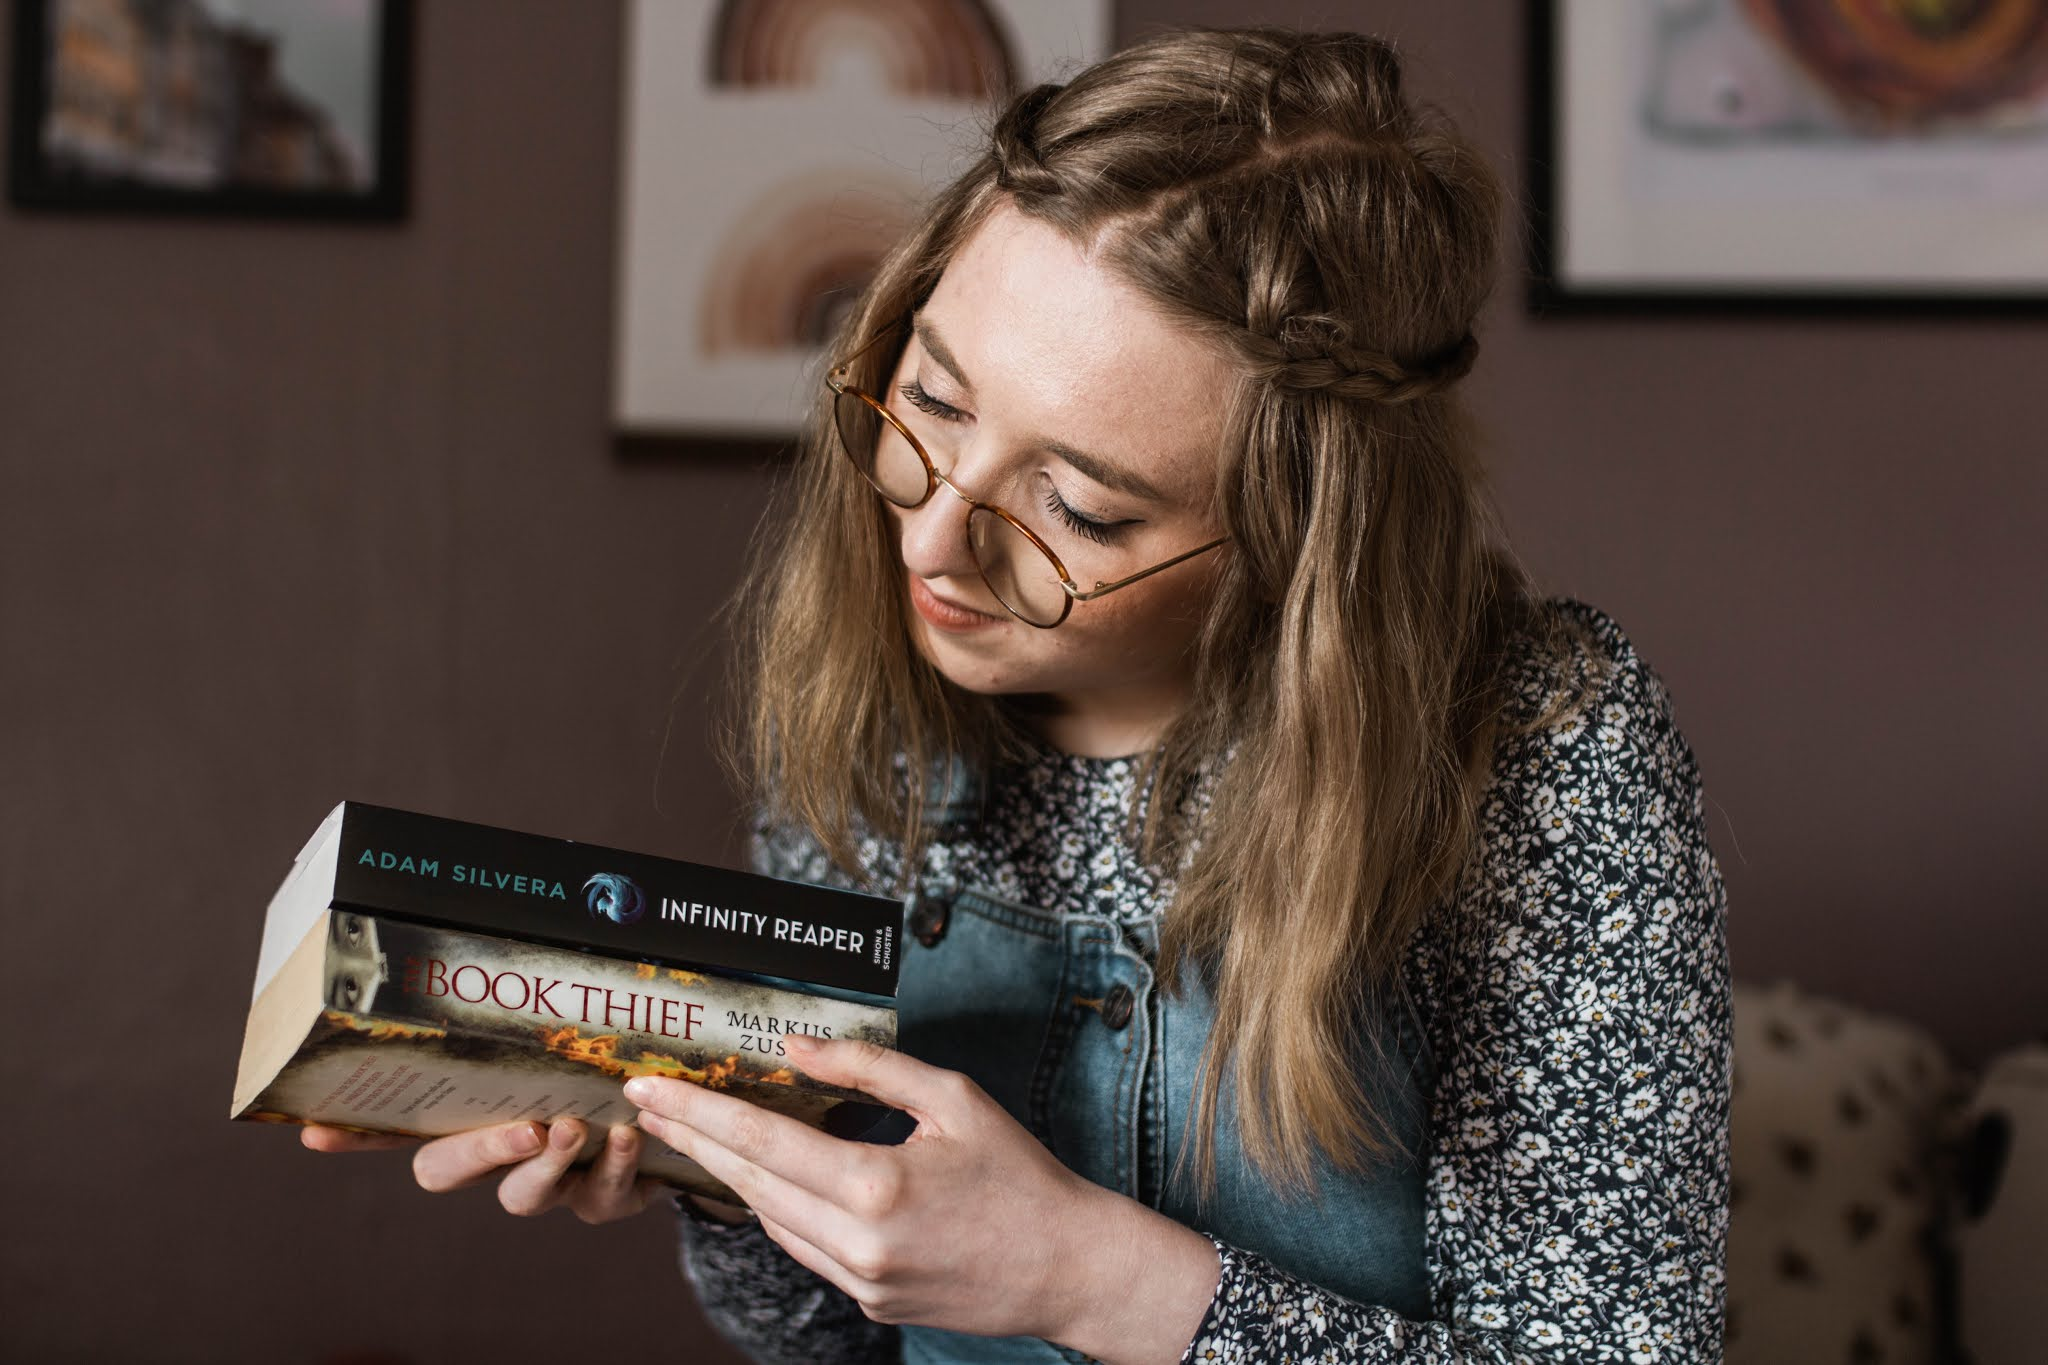 girl in blue holding book stack